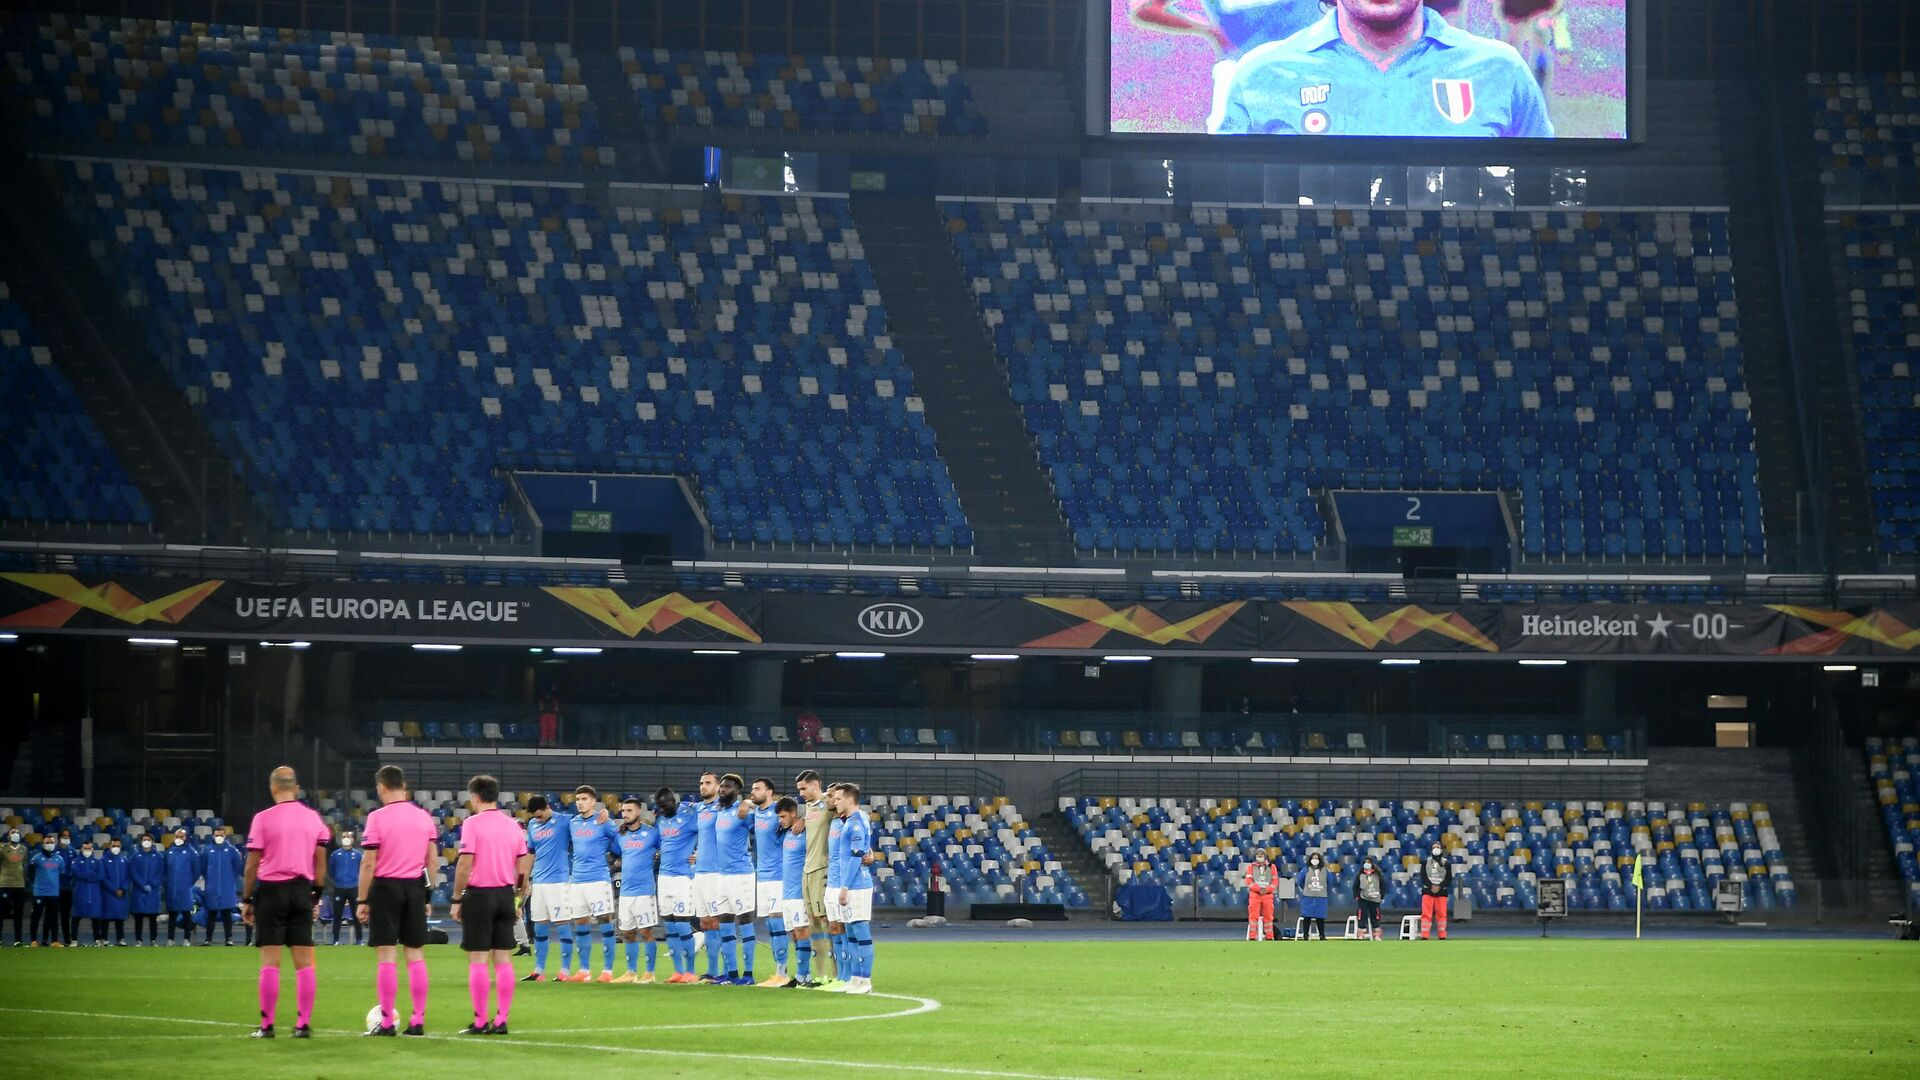 A screen displays a photo of late Argentinian football legend Diego Maradona as players hold a minute of silence in homage to Maradona prior to the UEFA Europe League Group F football match Napoli vs Rijeka on November 26, 2020 at the San Paolo stadium in Naples. - Maradona, widely remembered for his Hand of God goal against England in the 1986 World Cup quarter-finals, died on November 25, 2020 of a heart attack at his home near Buenos Aires in Argentina, while recovering from surgery to remove a blood clot on his brain. (Photo by Filippo MONTEFORTE / AFP) - РИА Новости, 1920, 26.11.2020